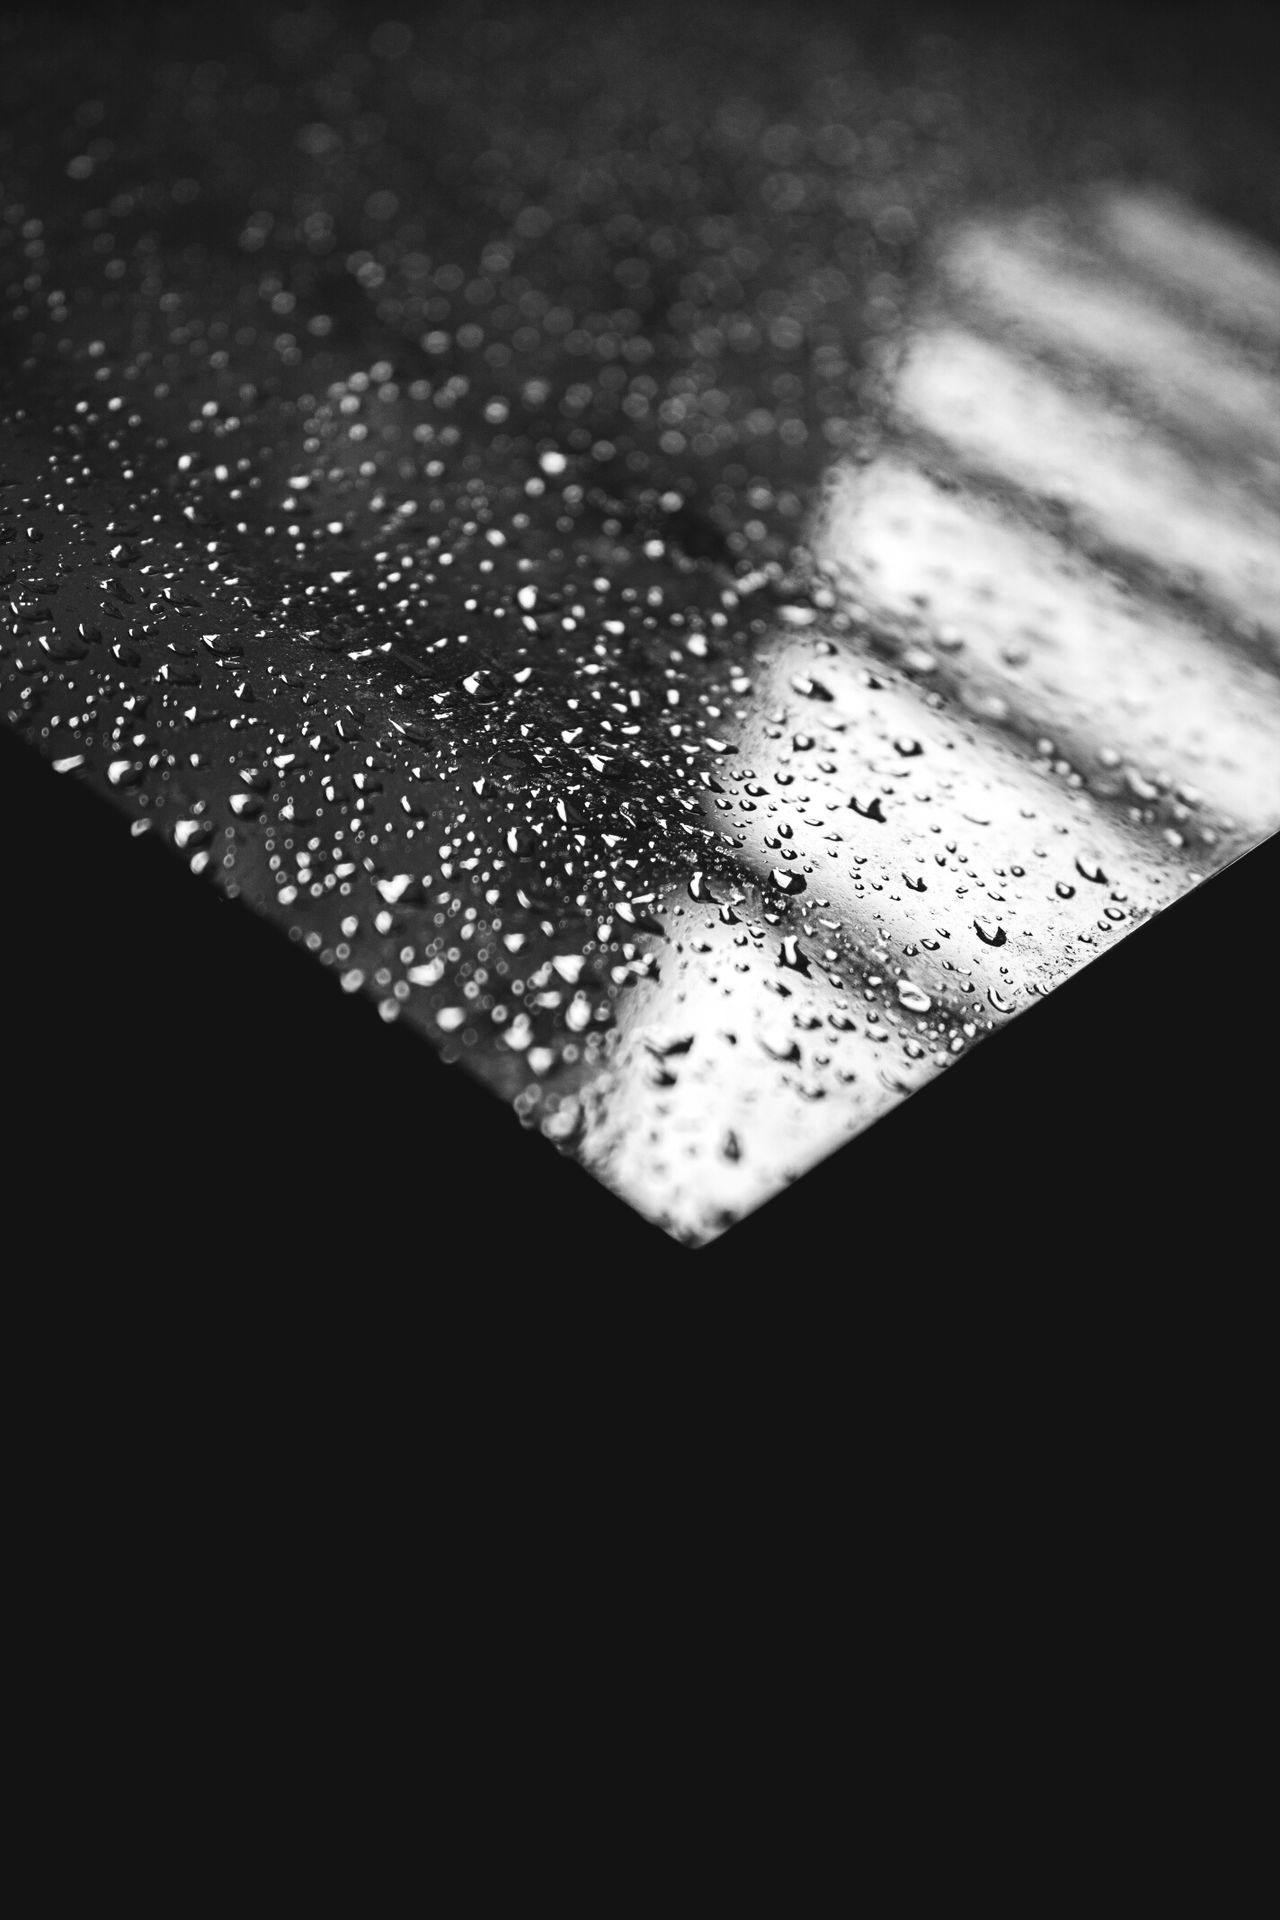 Lagrimas en la lluvia Lluvia Rain Tears Tears In Rain Nébula Picture Monochrome Black And White